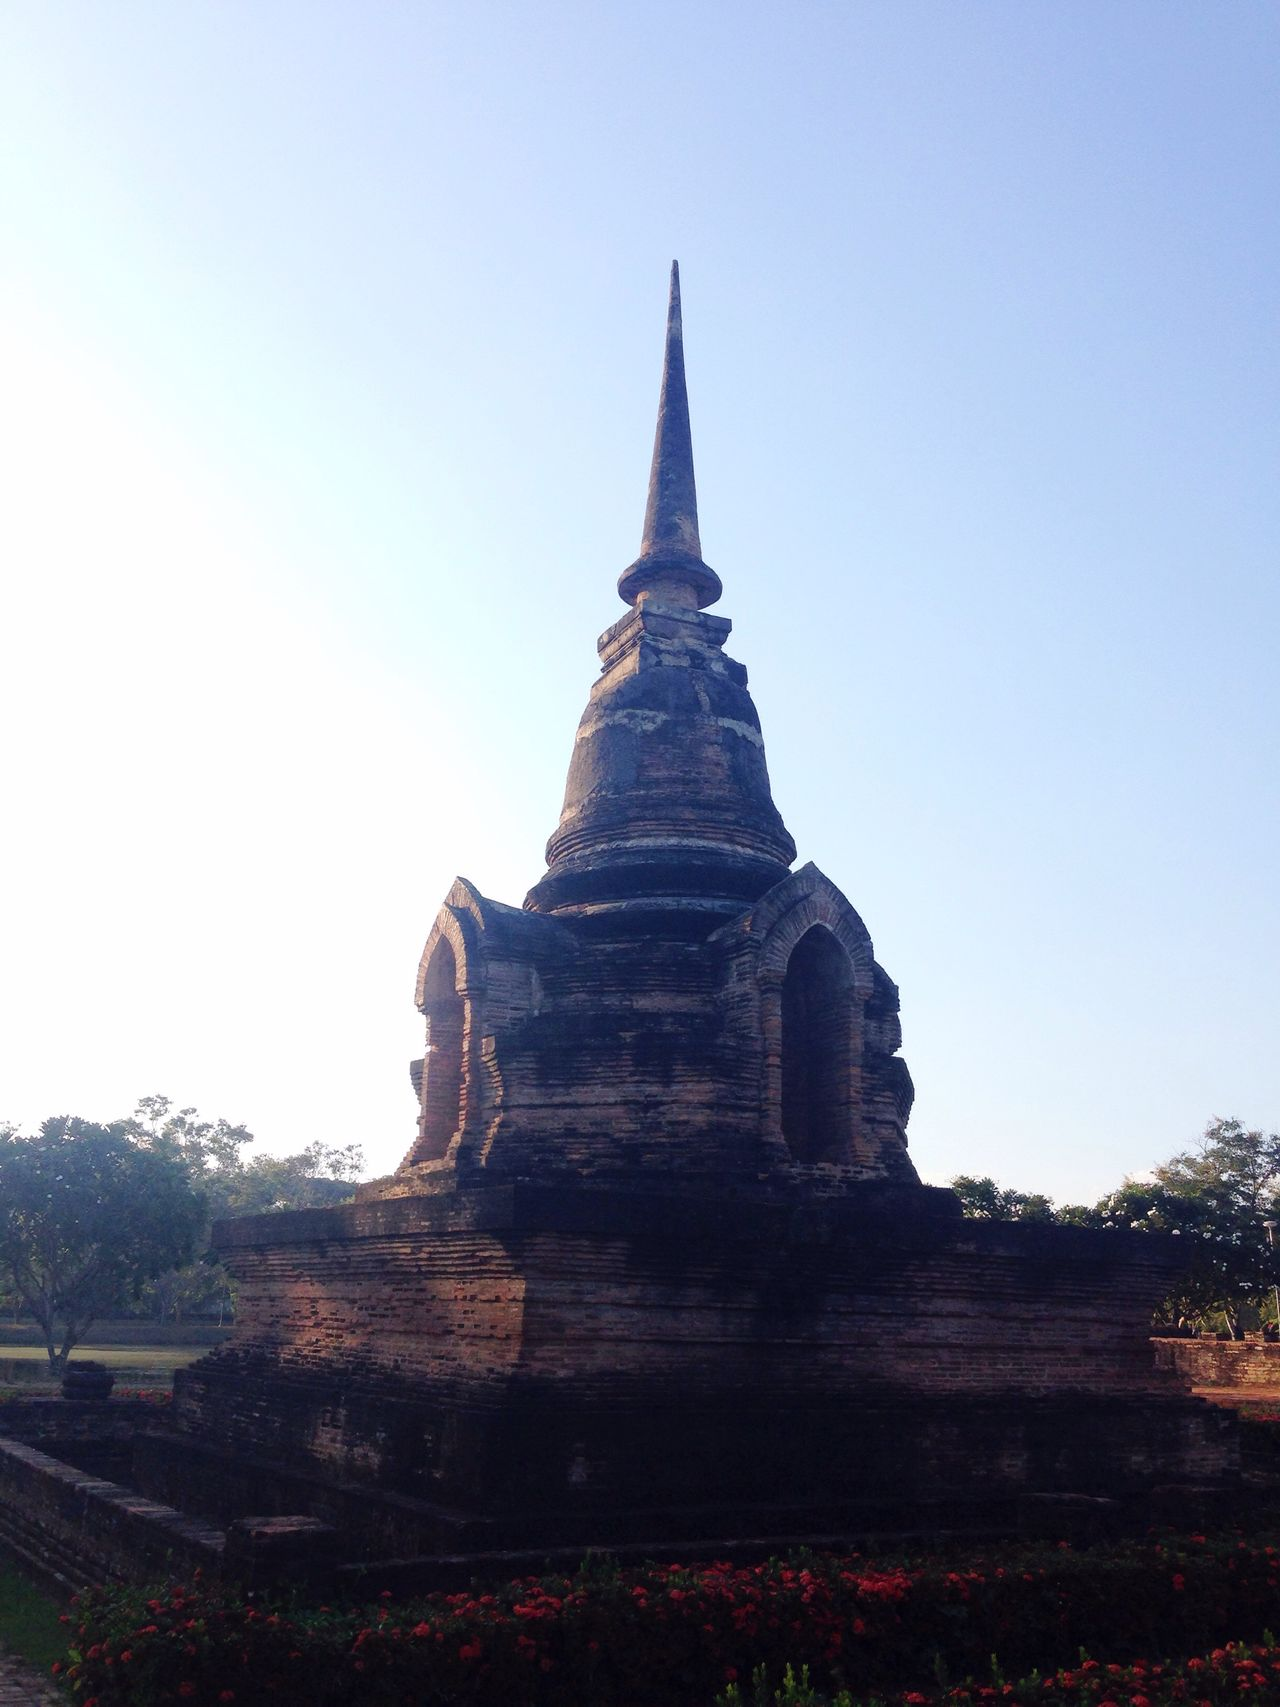 Religion Place Of Worship Travel Destinations Spirituality Sukhothai Sukhothaihistoricalpark Travel Traveling Architecture History Ancient Built Structure No People Outdoors Nature Cultures Tree Day Sky